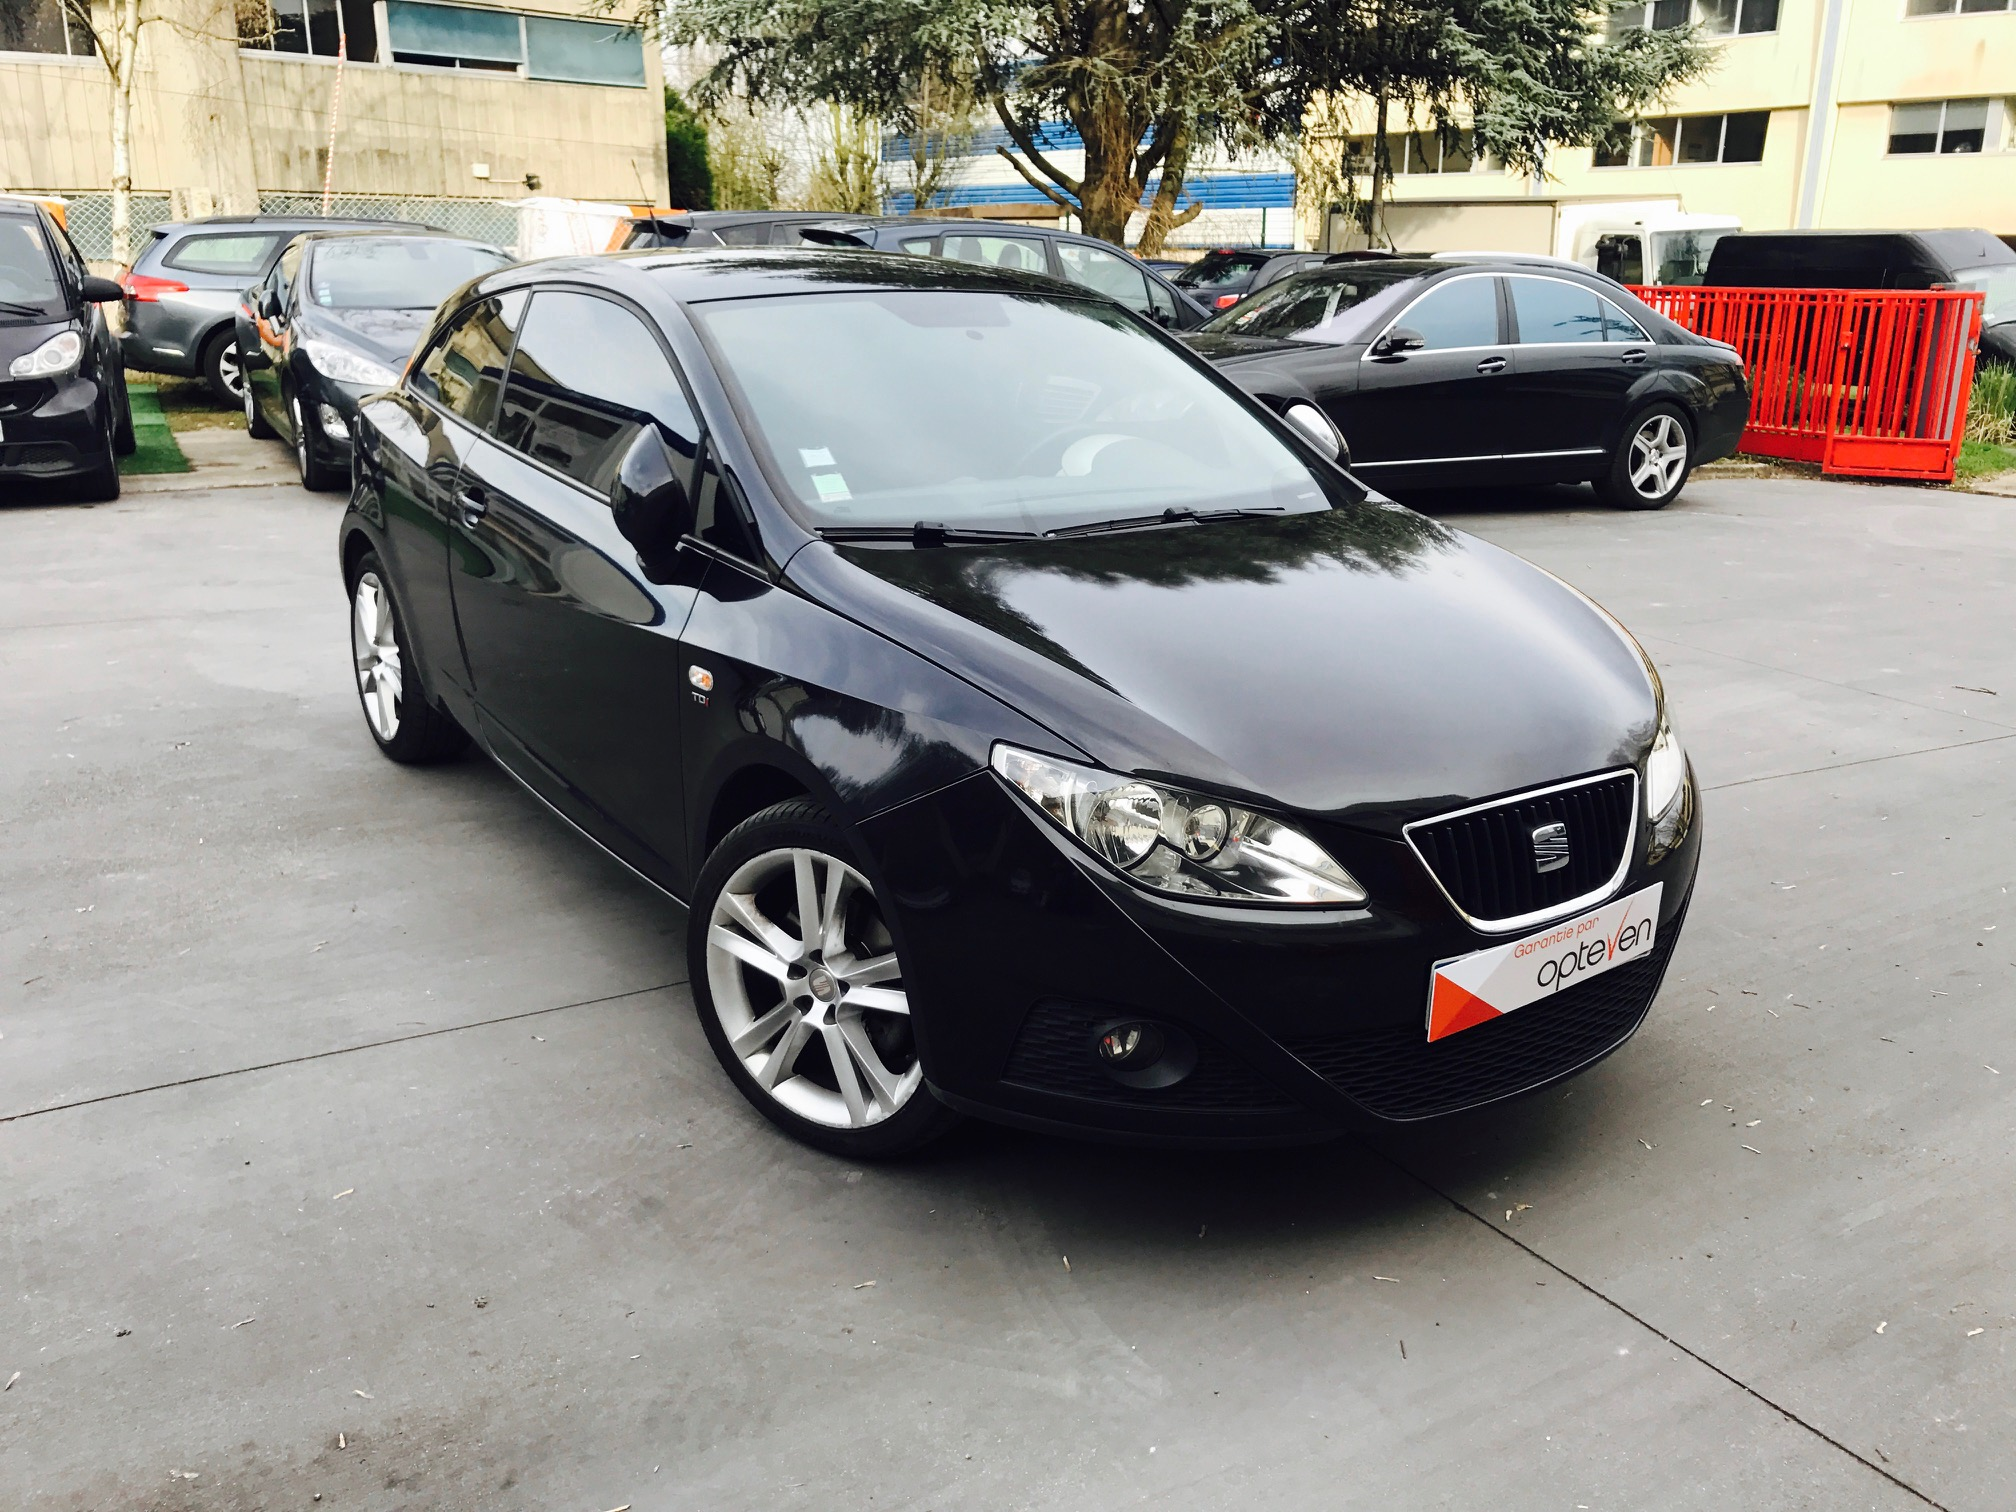 voiture seat ibiza sc 1 9 tdi 105 fap sport occasion diesel 2009 86800 km 7490. Black Bedroom Furniture Sets. Home Design Ideas